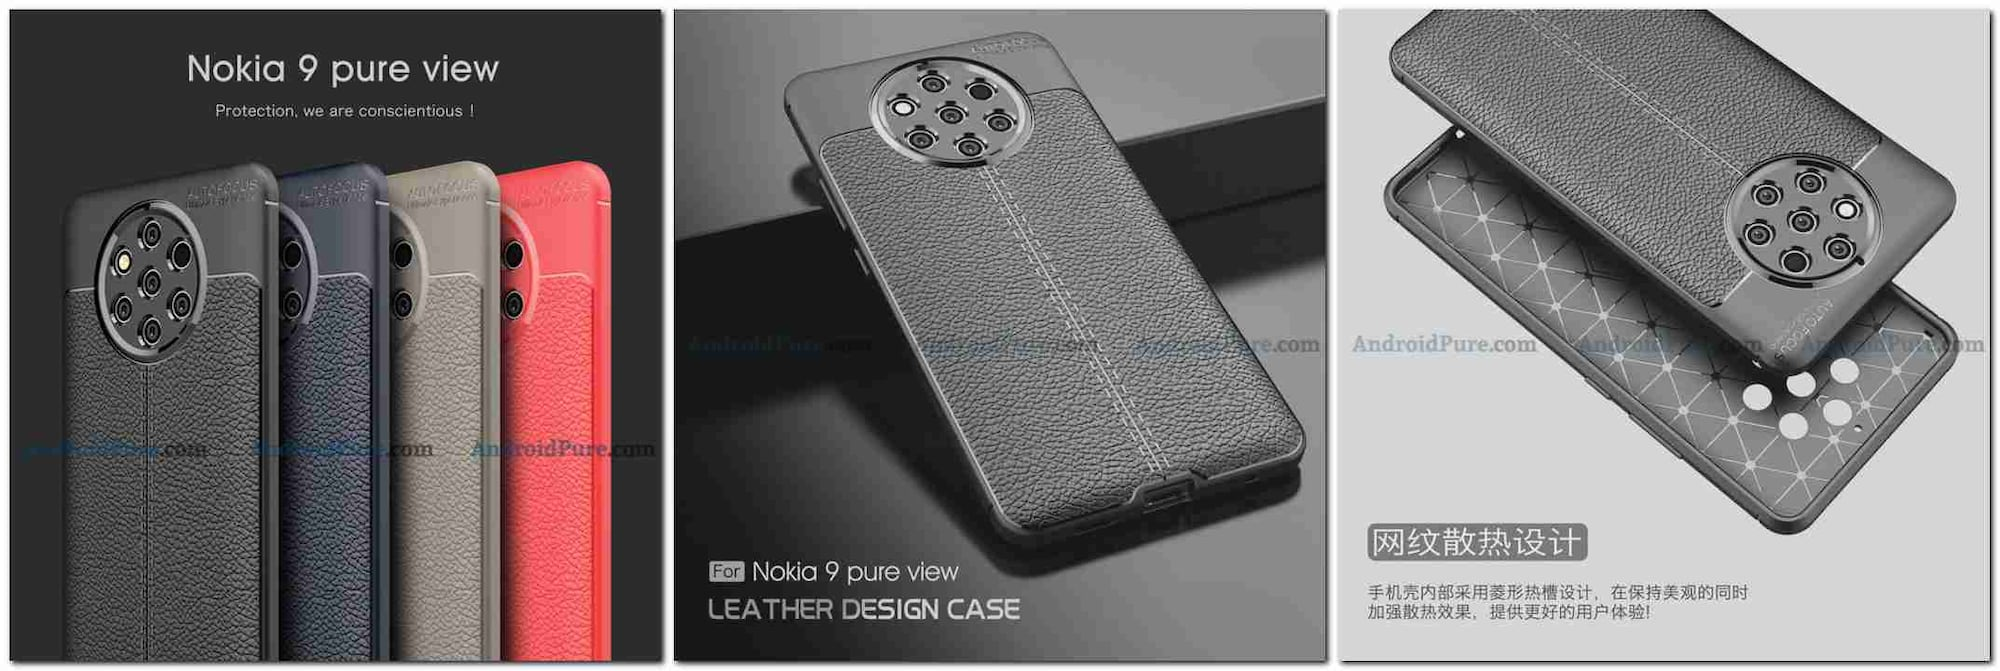 Yet another penta-lens case render leaked for the expected Nokia 9 Pureview